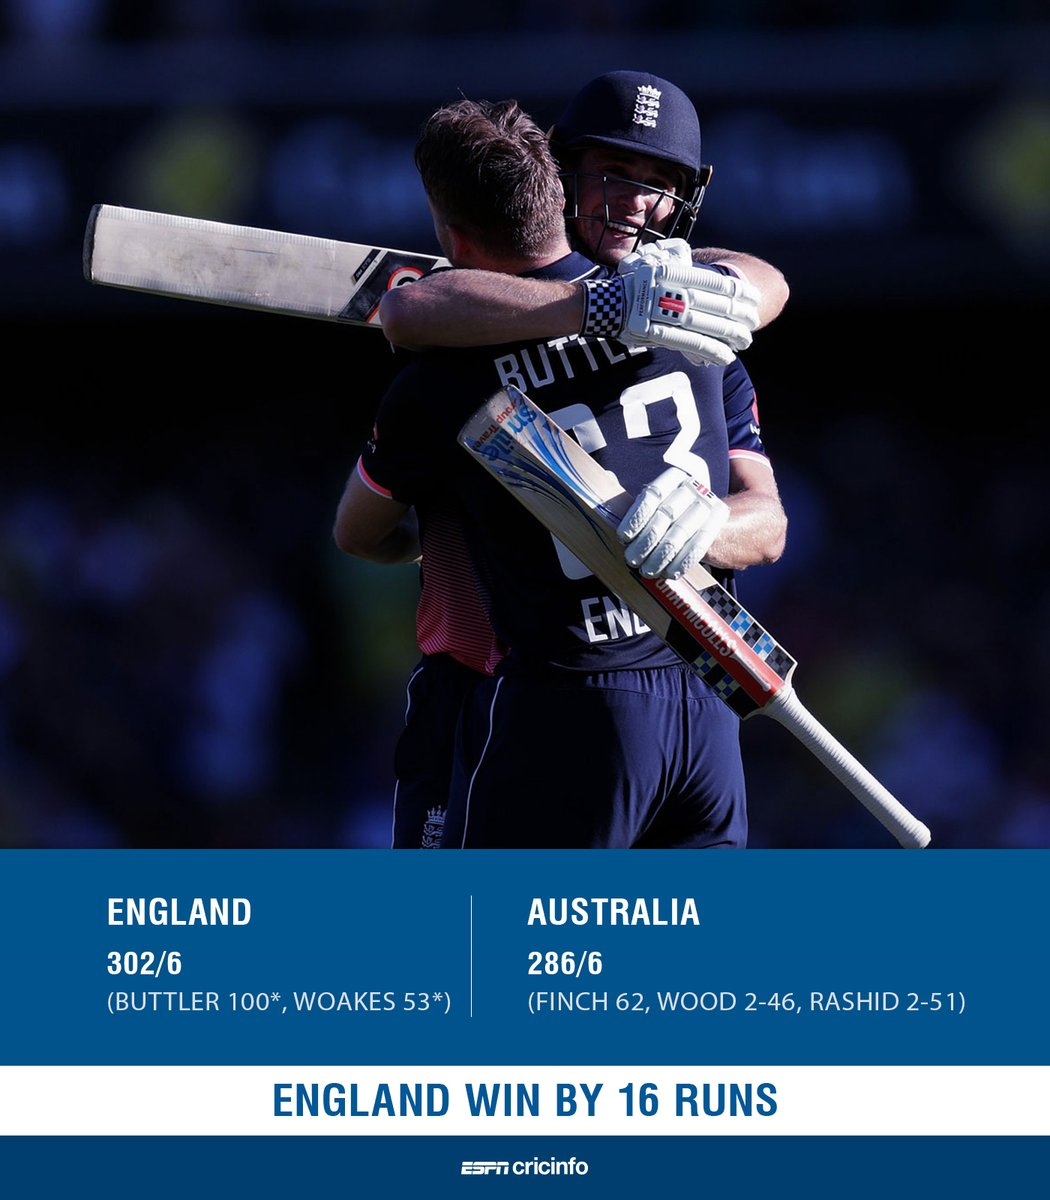 #TVratings Sunday #cricket ODI #AUSvENG #Nine #WWOS Session 1: 1.237 million (5 City: 846,000 / Regional: 391,000) Session 2: 1.521 million (5 City: 1.034 million / Regional: 487,000)